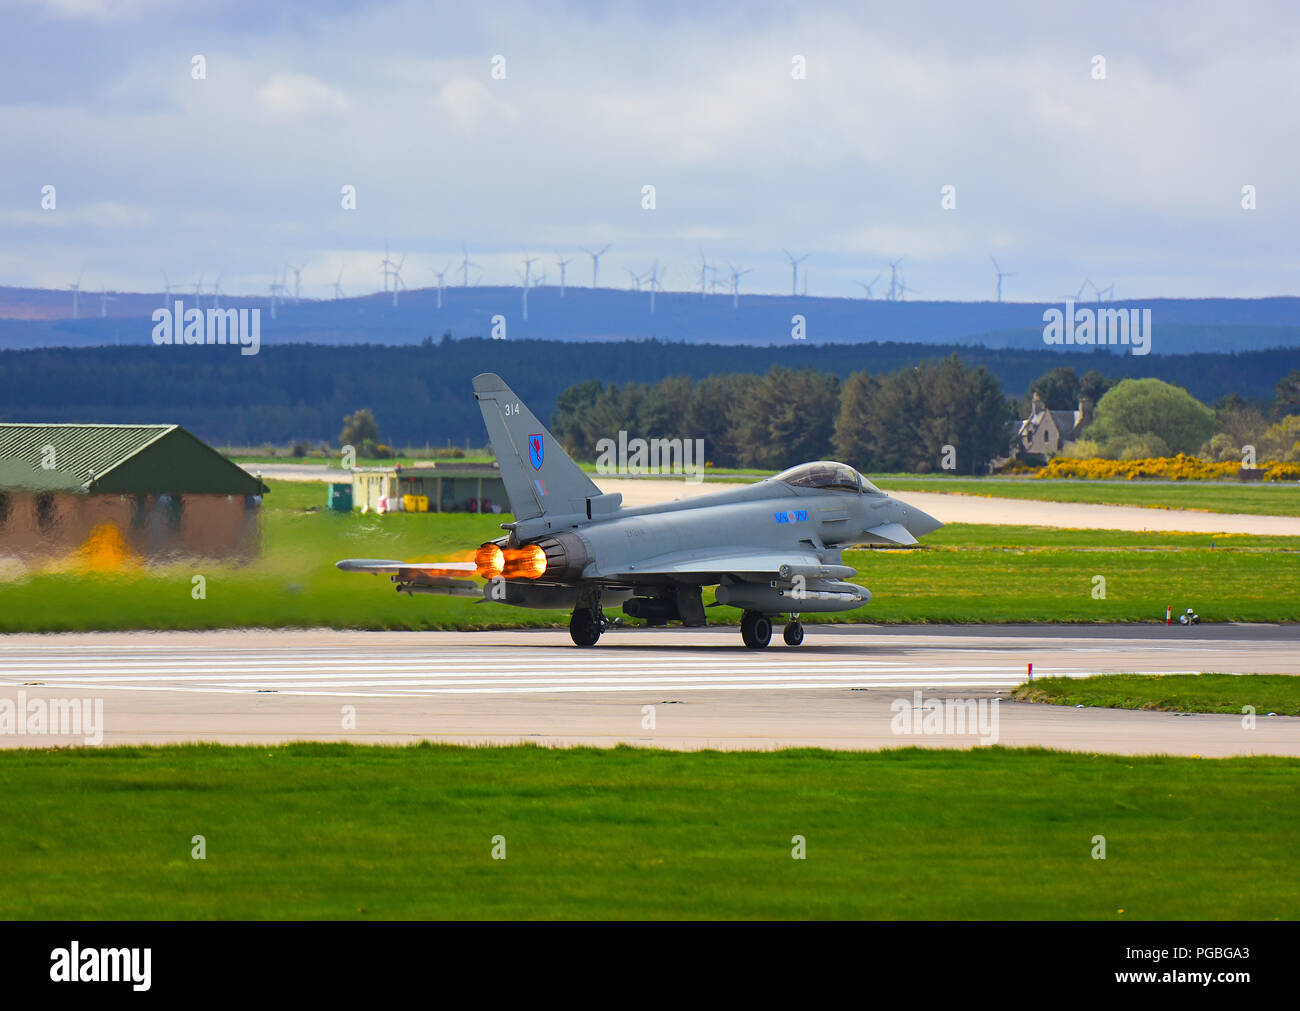 An RAF Lossiemouth Eurofighter FRG4 on a QRA take off with glowing afterburner tail pipes. - Stock Image